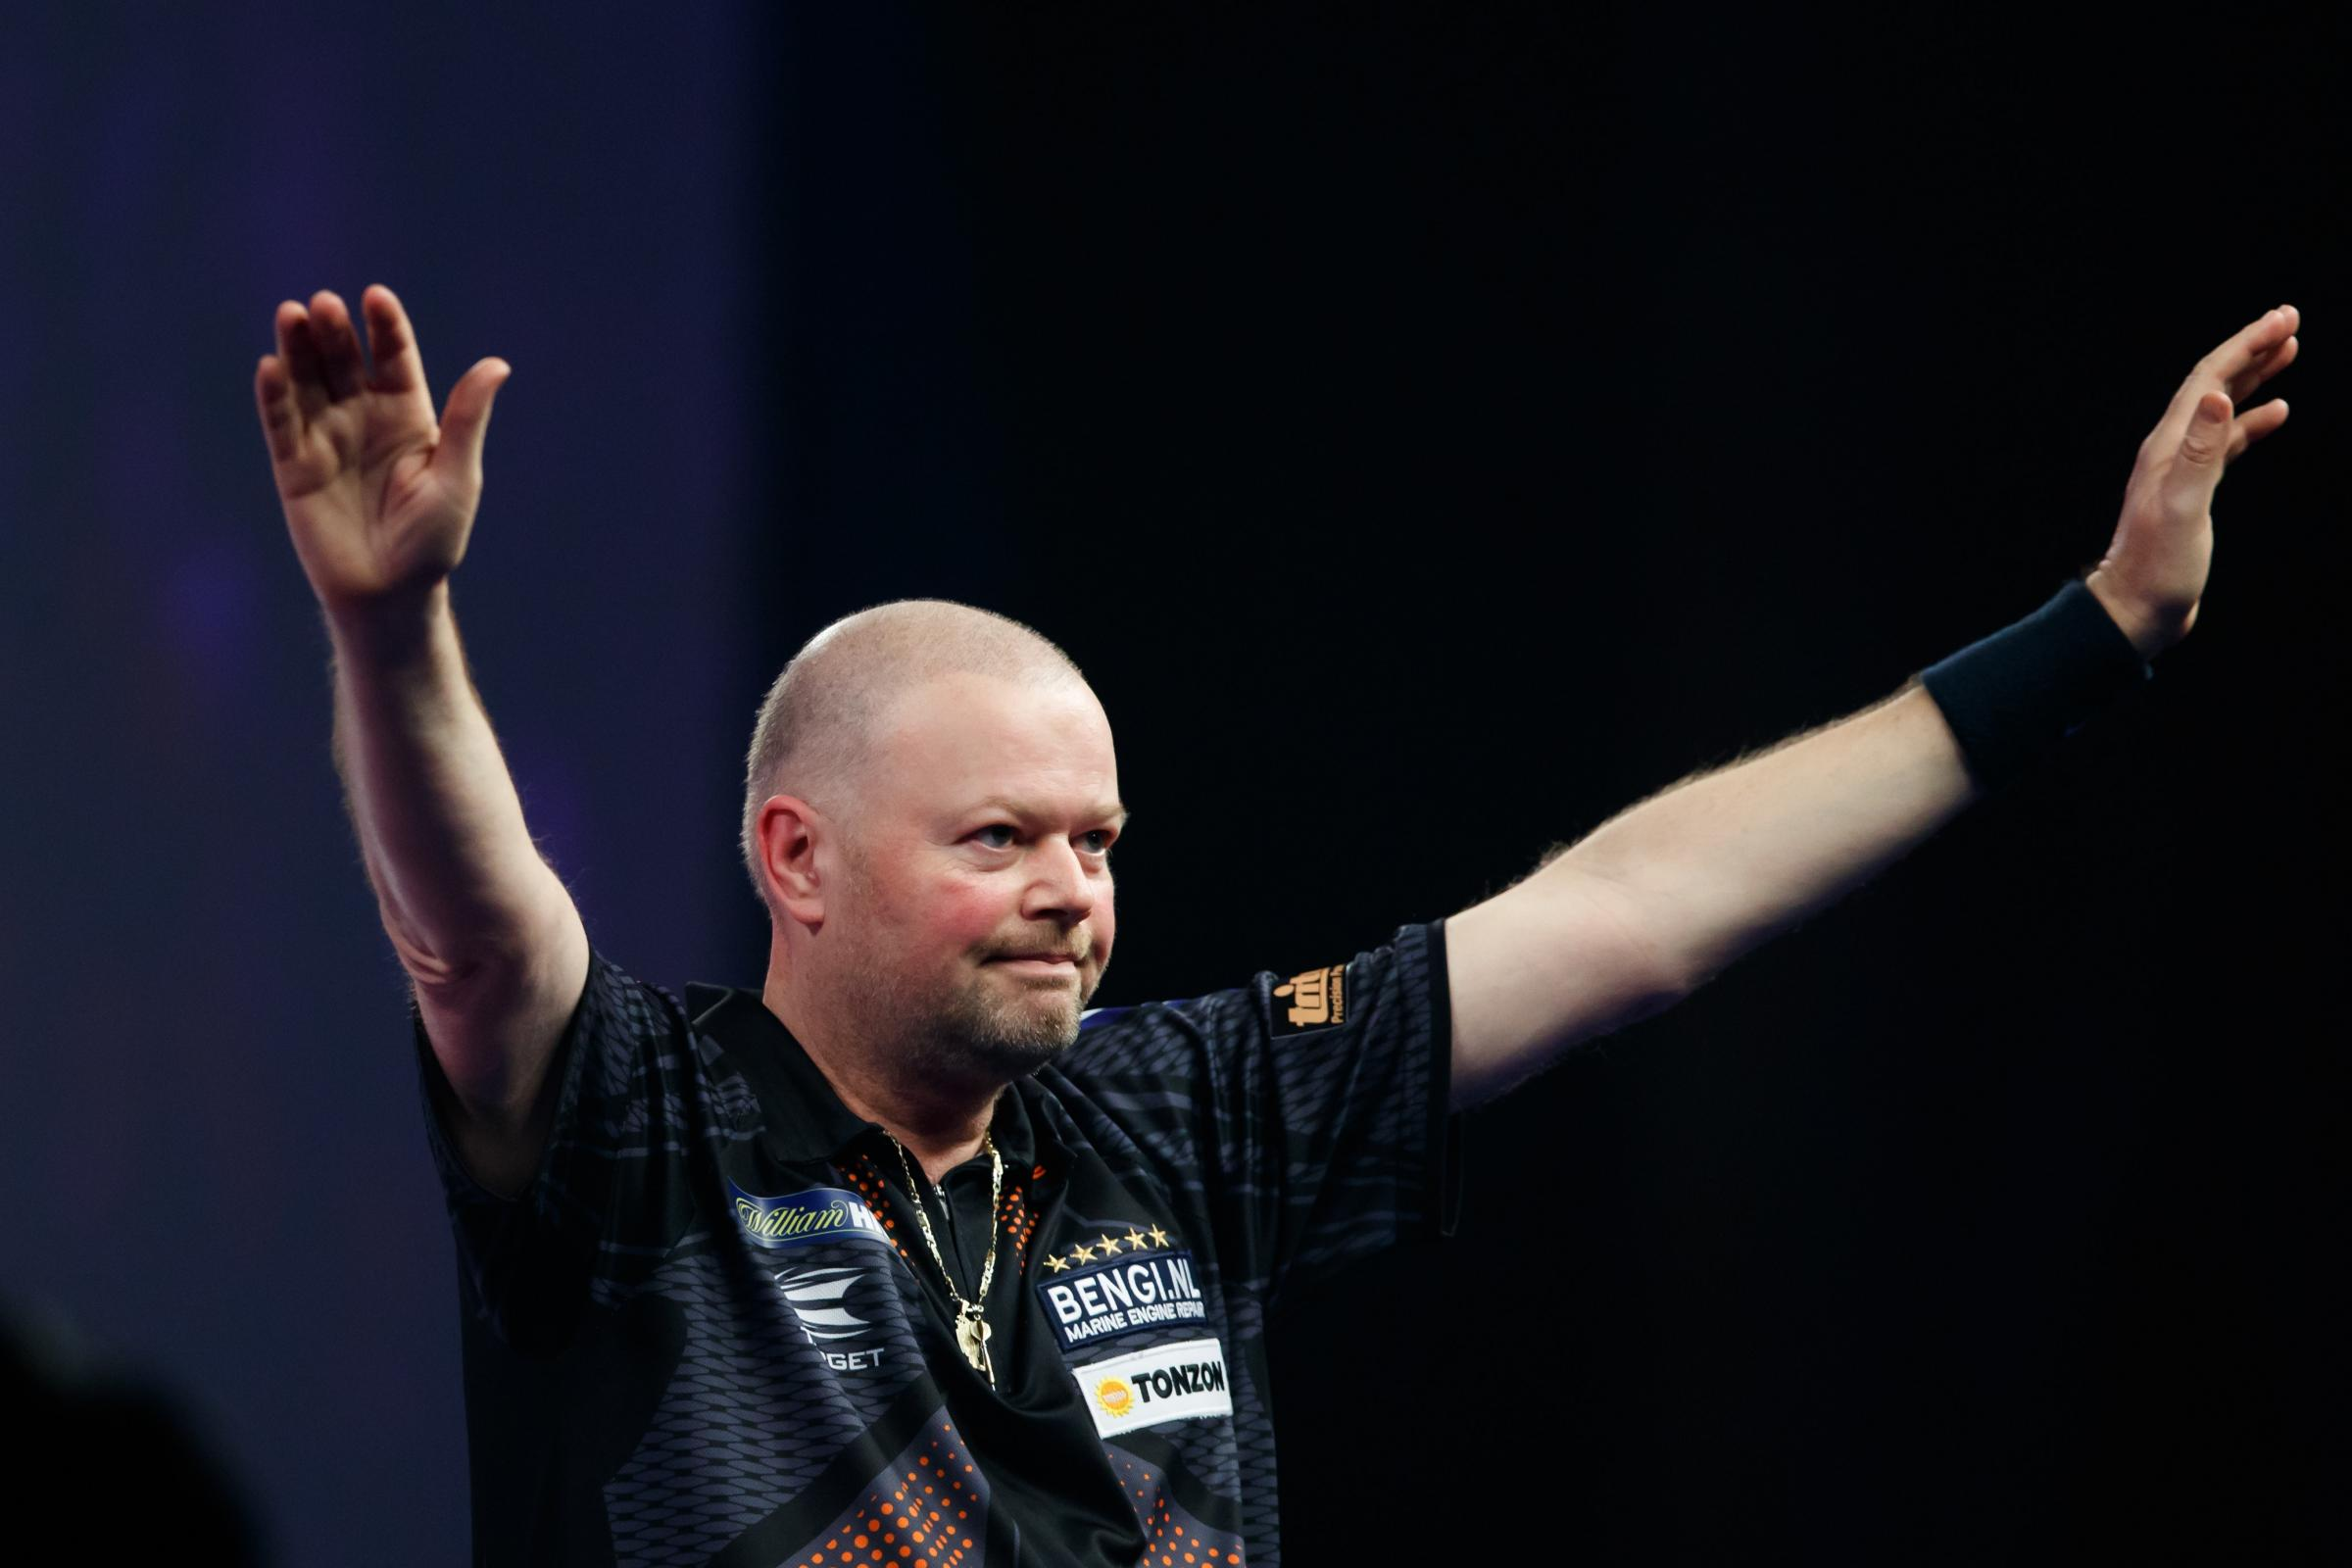 Raymond van Barneveld boosted his survival hopes in Berlin